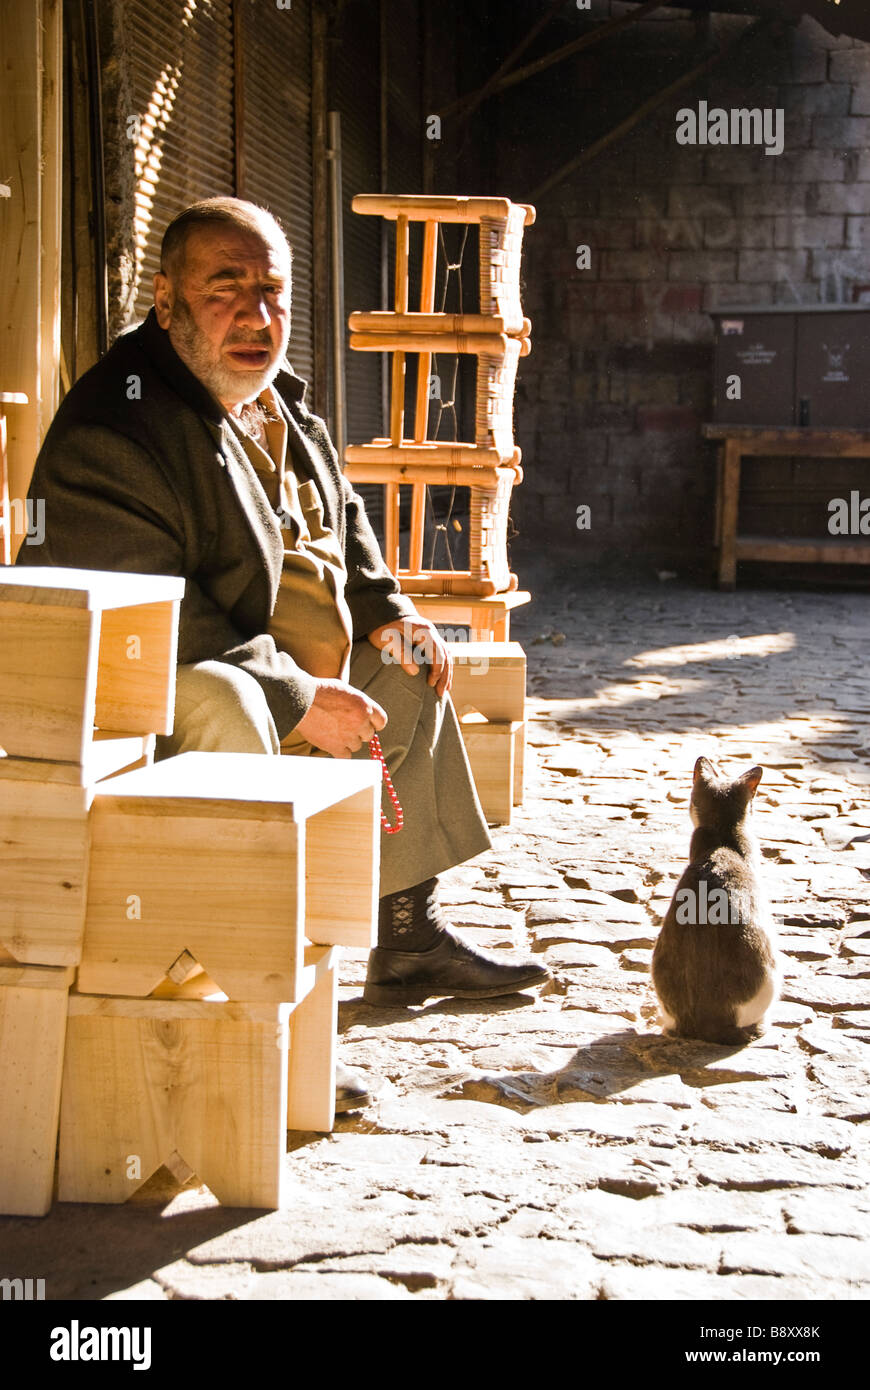 Man and a cat, Diyarbakir, Turkey, Asia - Stock Image